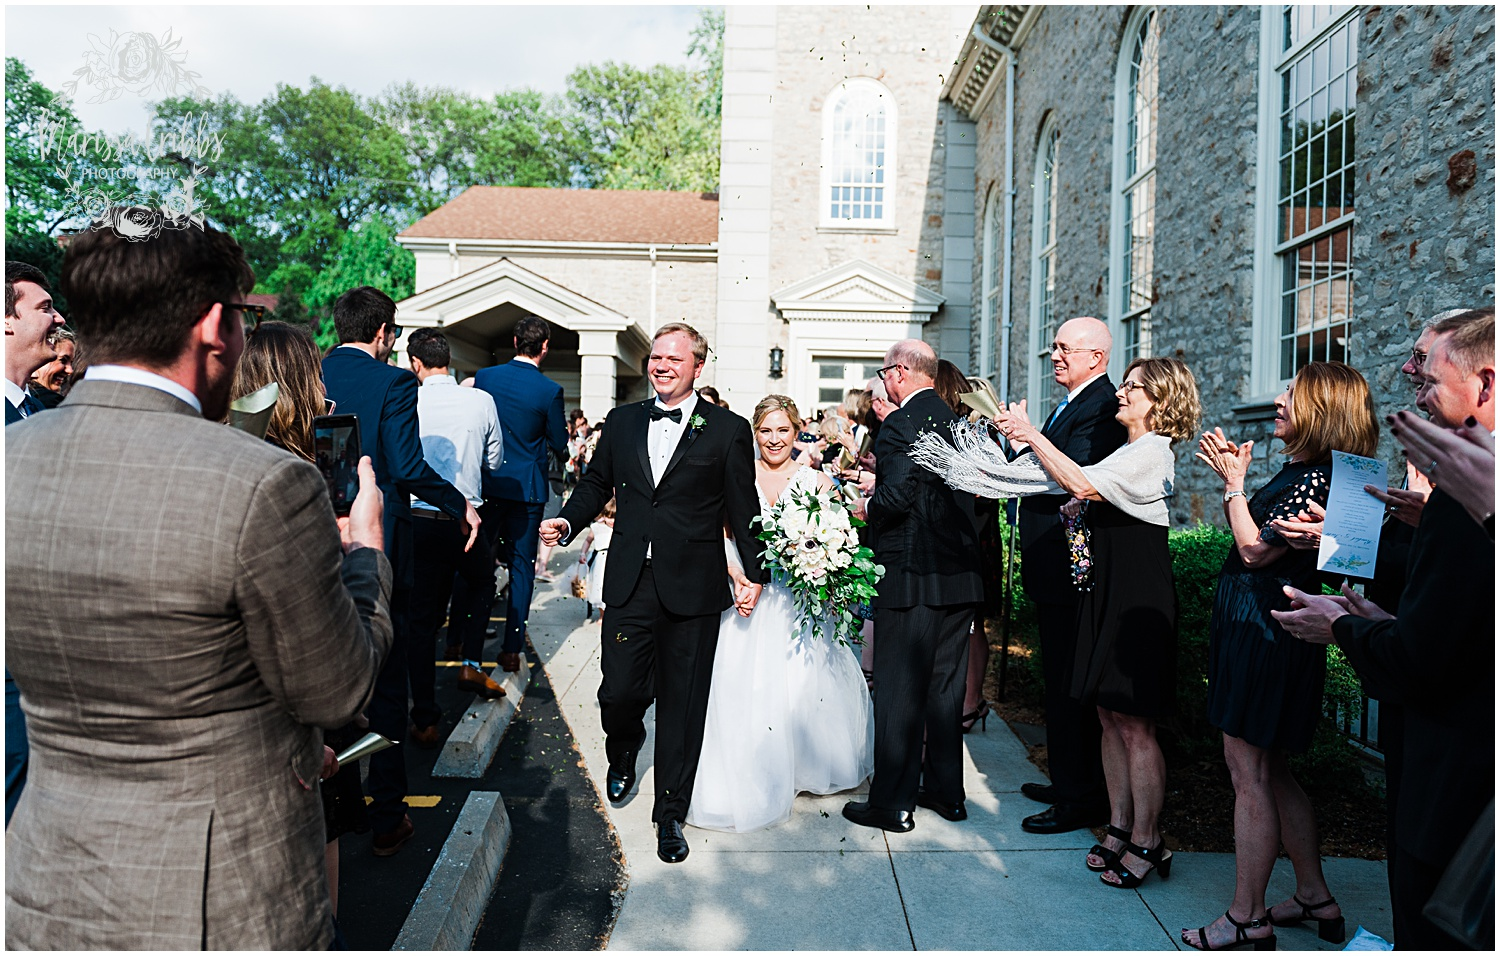 RACHEL & SCOTT MARRIED | MARISSA CRIBBS PHOTOGRAPHY_7713.jpg